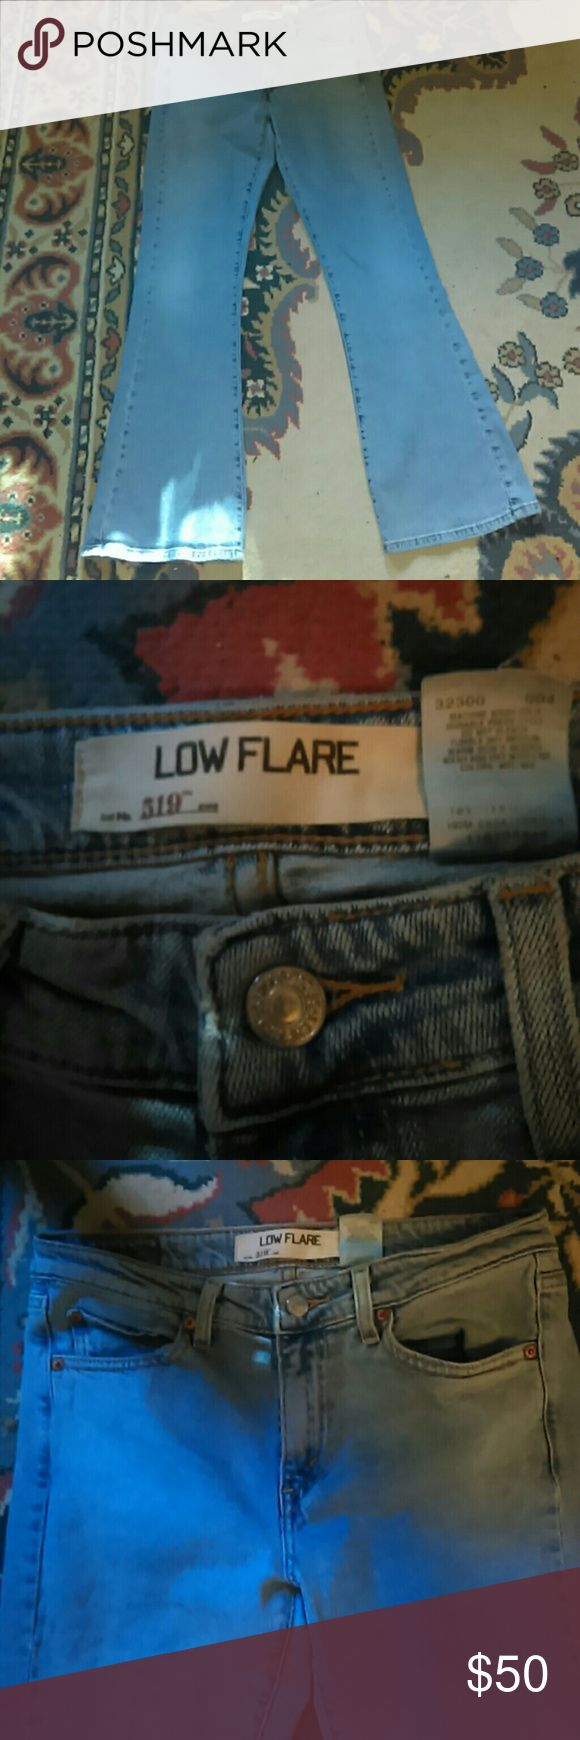 "Levis 519 Low Flare Girls size 9s Jr Levi's 519 Low Flare Girls size 9s Jr has amazing flare if you live flares and bells like I do these are a perfect amount of flare to get your day started! Lightly worn great condition measures waist 16.5"" hips 18"" length 38"" Levis Jeans Flare & Wide Leg"